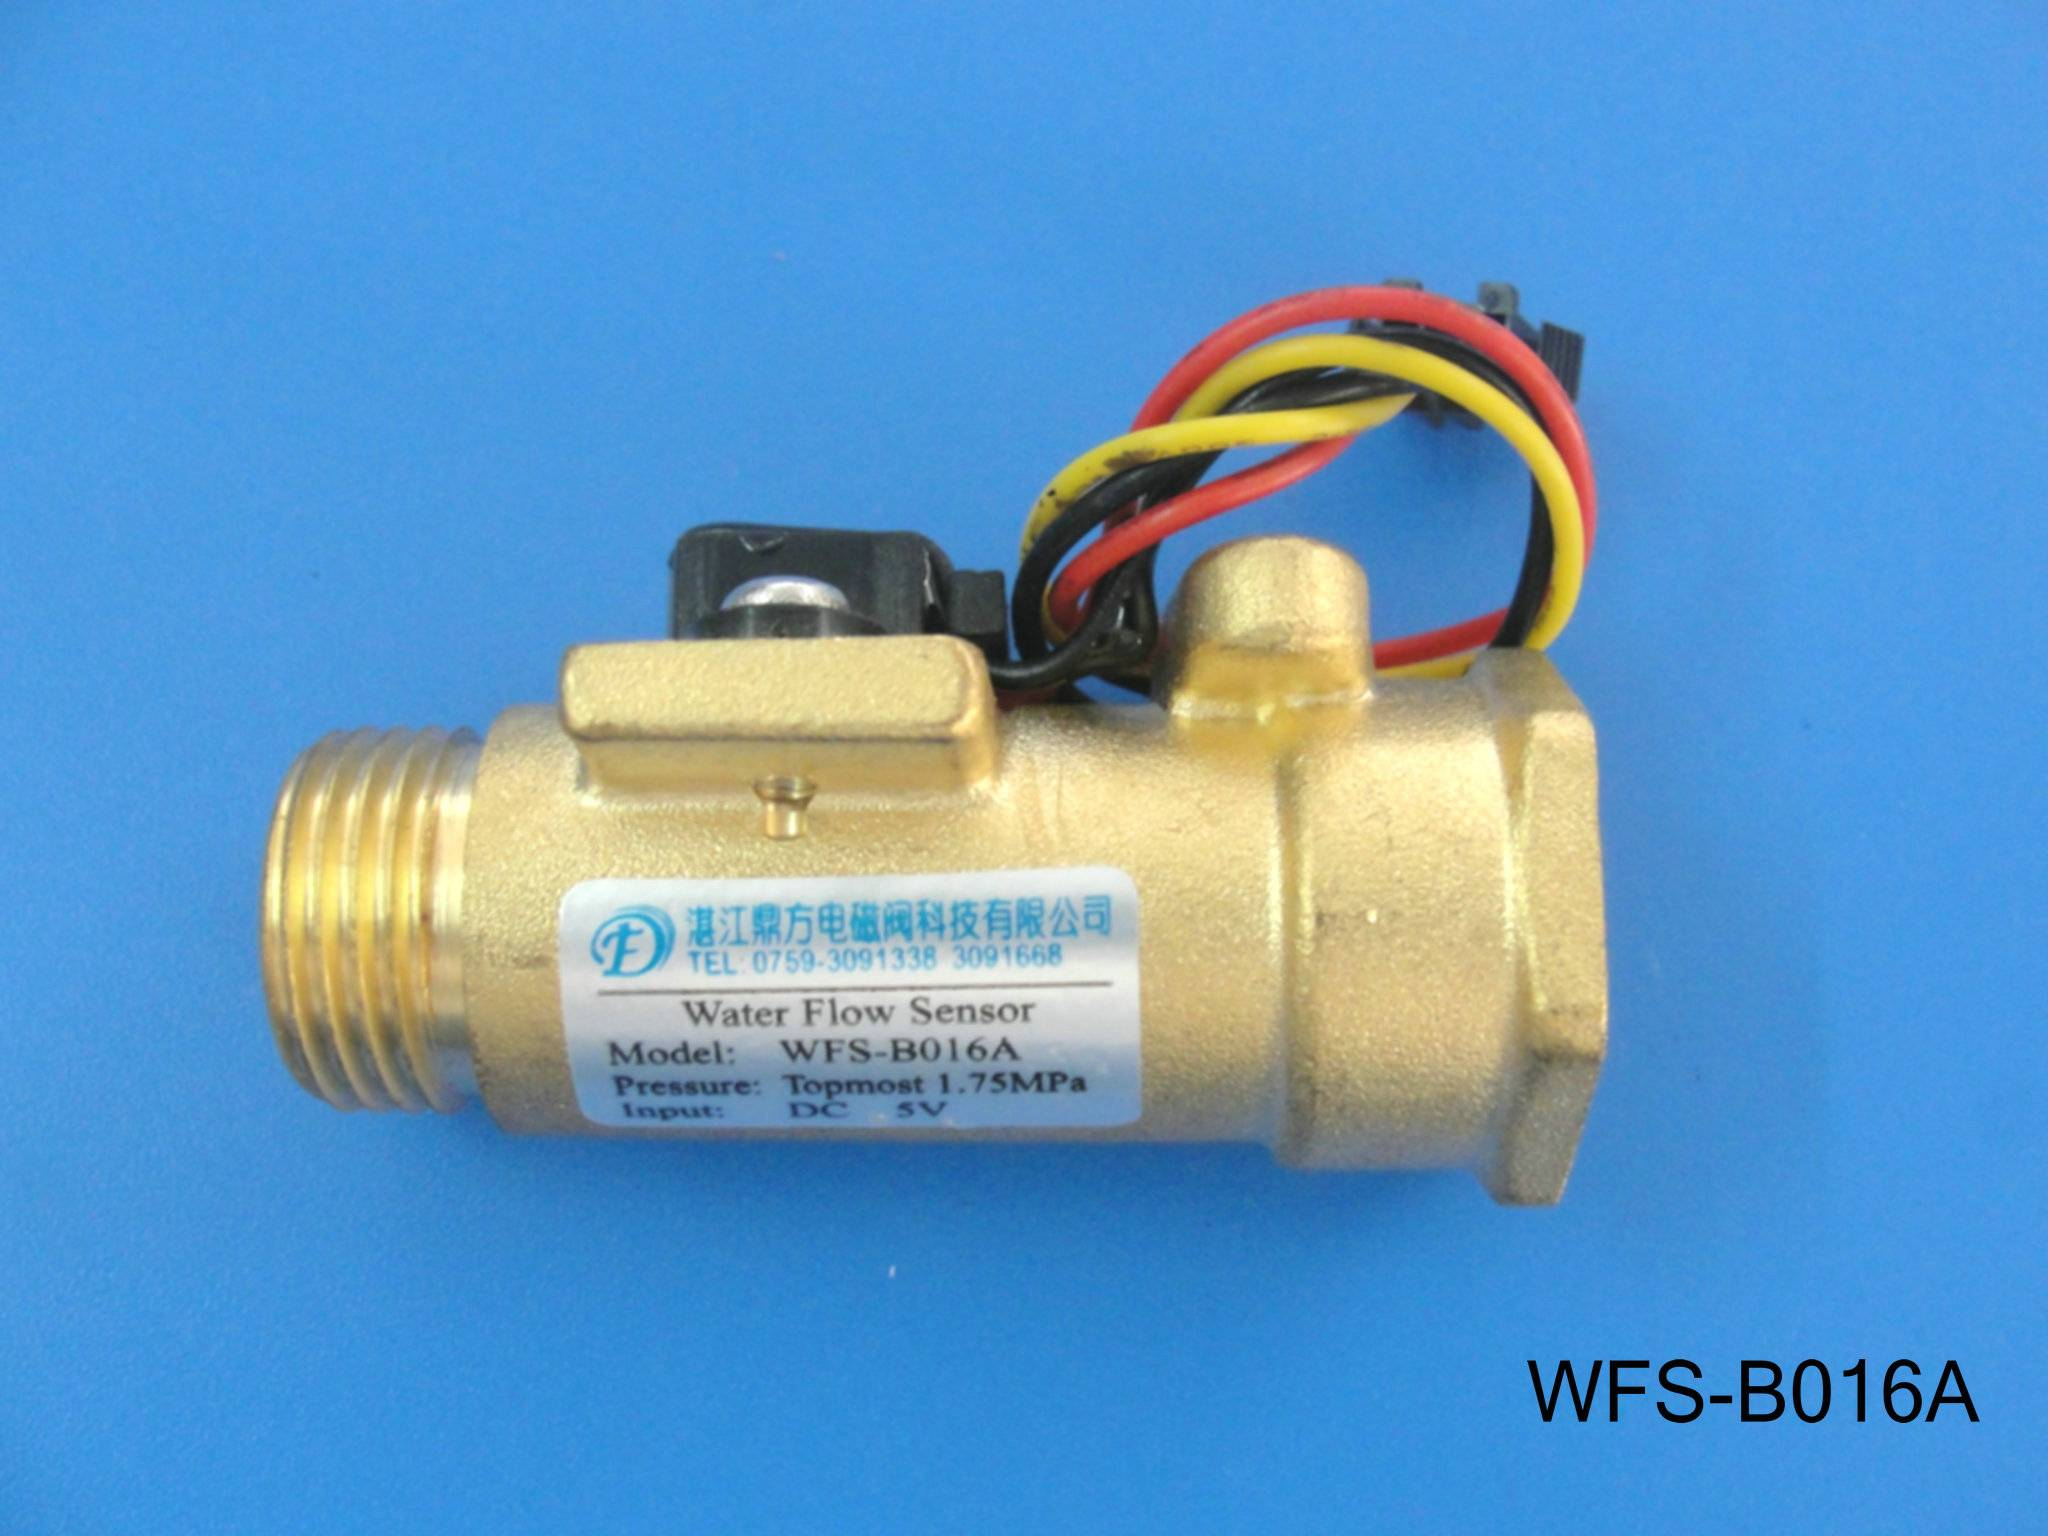 High temperature resistant all copper water flow sensor WFS-B016A